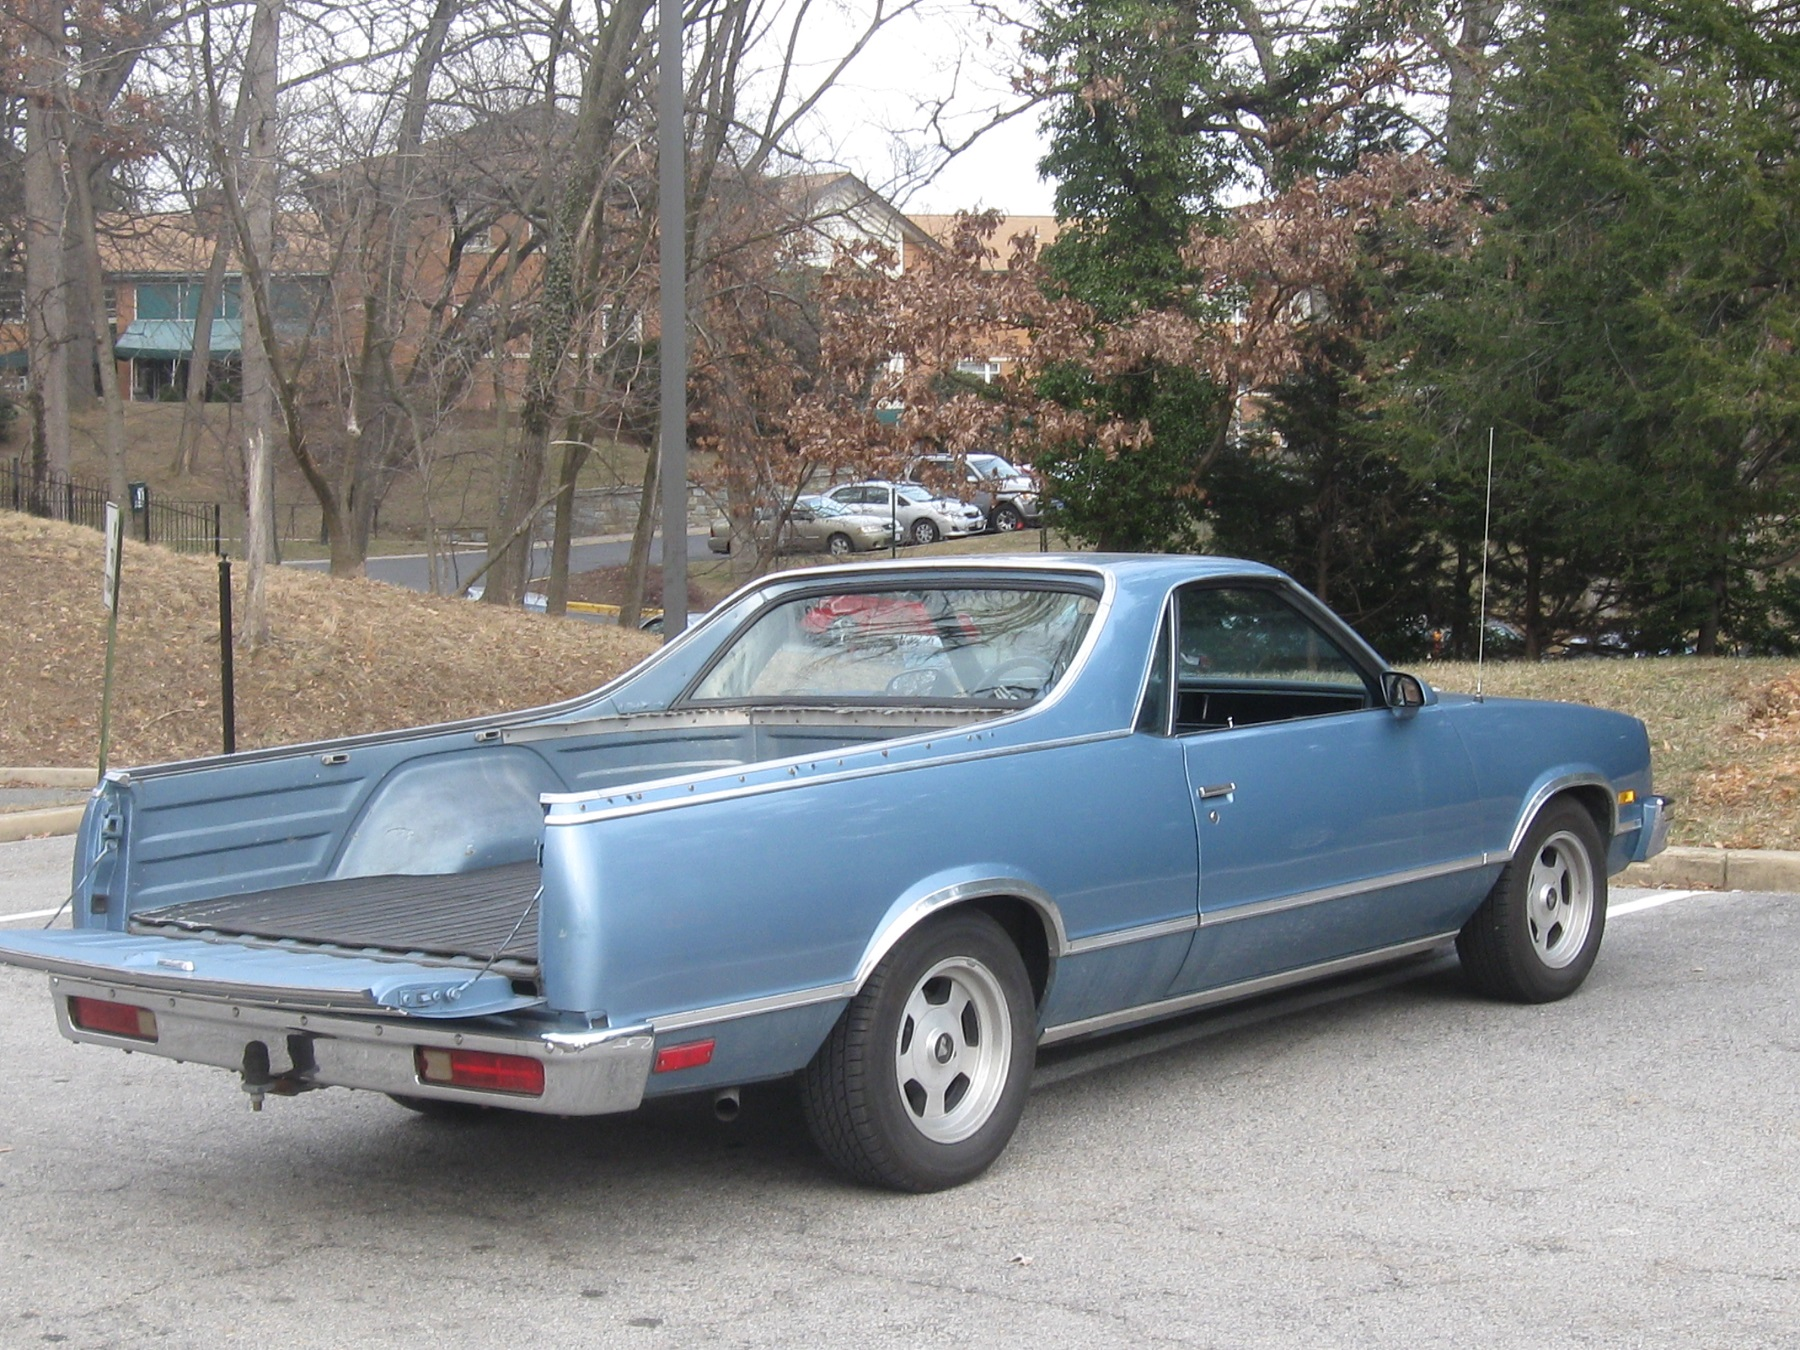 The el camino was a handsome car styled vehicle with a pickup truck type bed and tailgate the attractive el camino was introduced in 1959 and proved to be